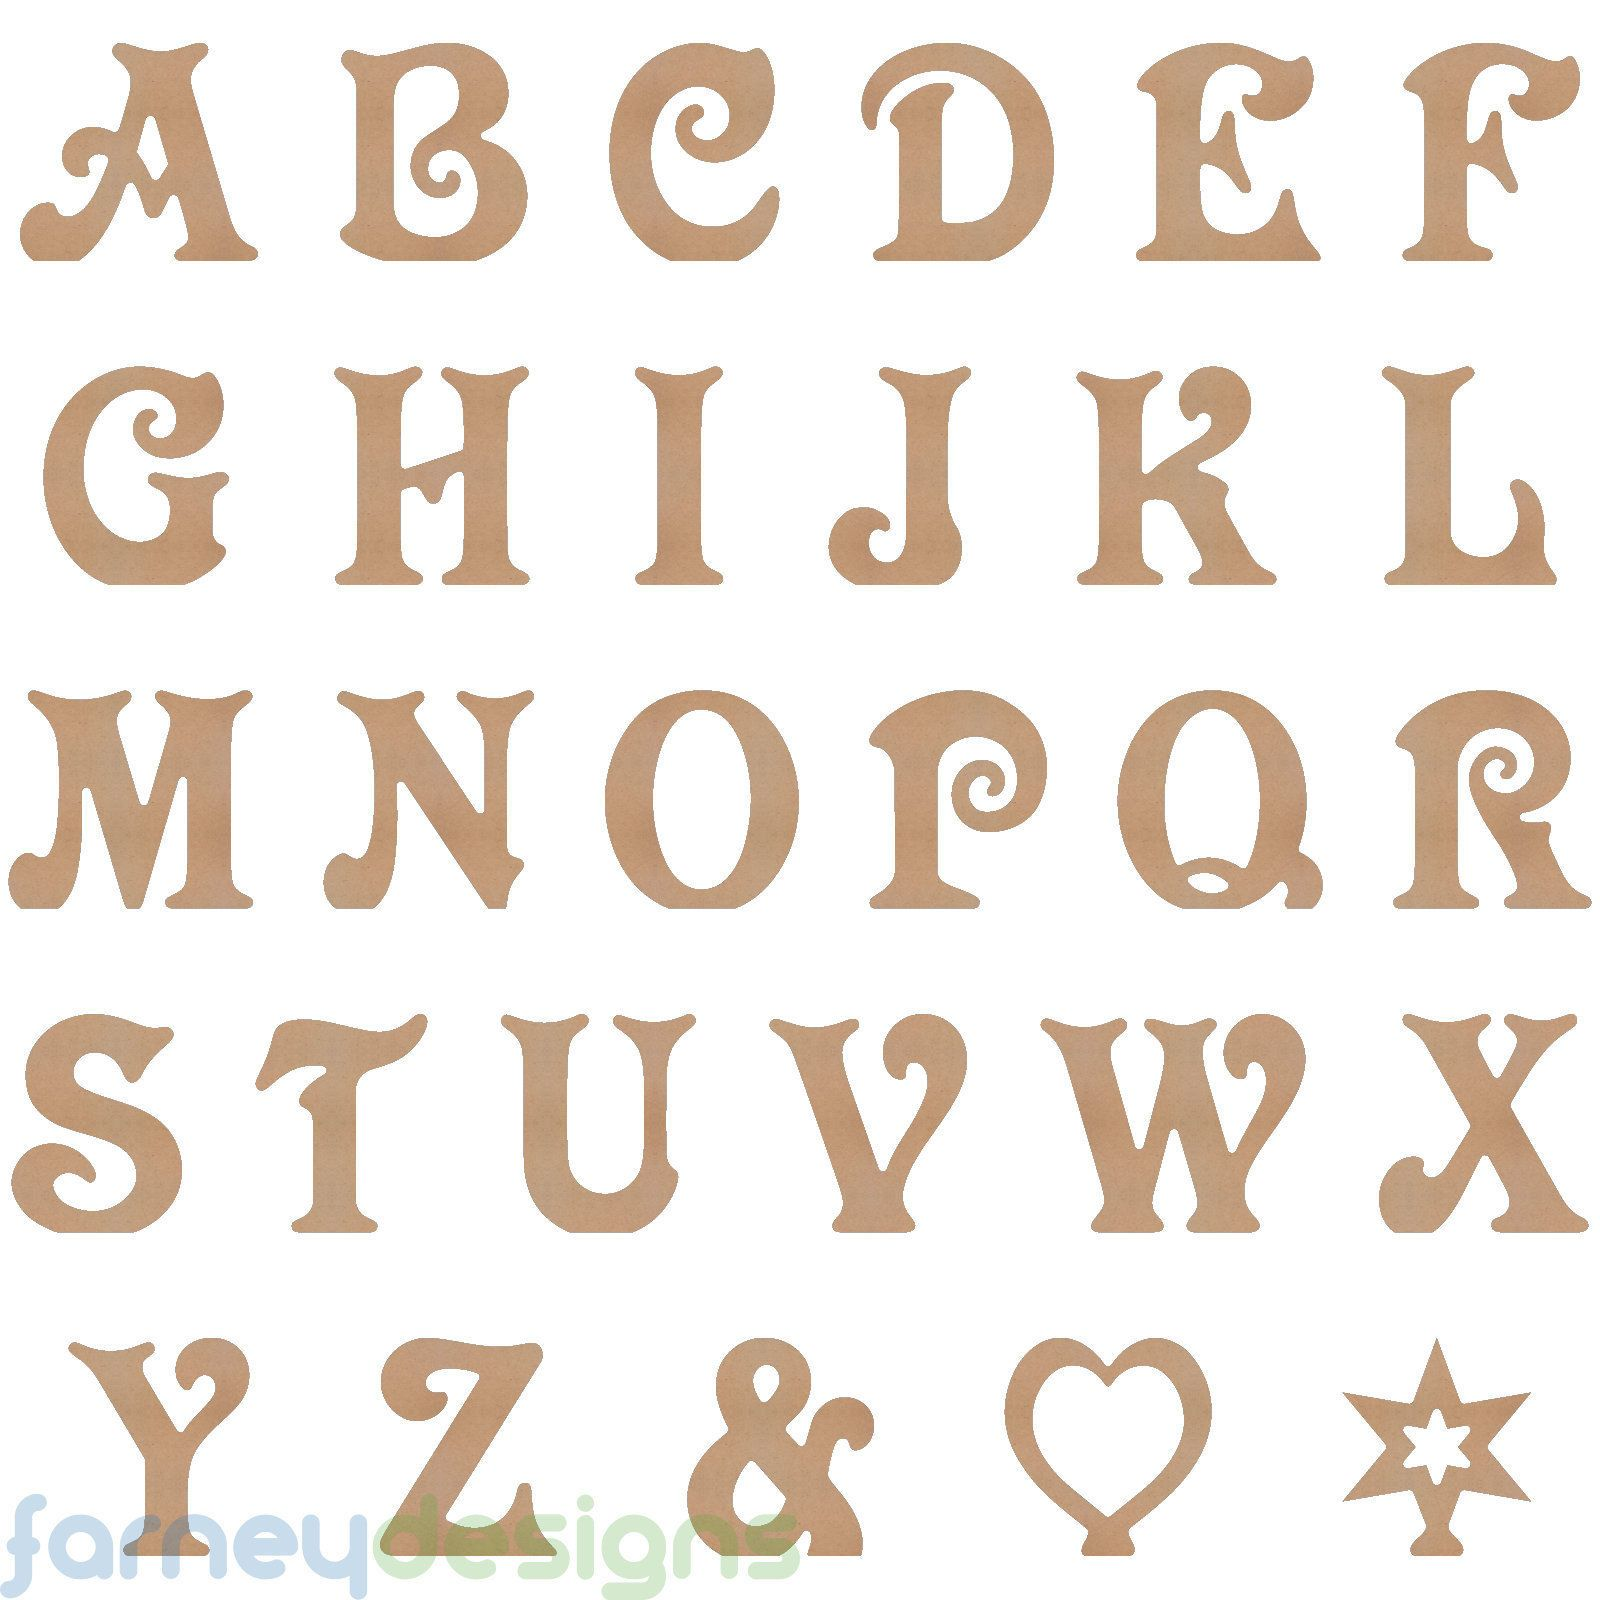 18mm thick mdf wooden letters free standing option 4 6 8 10 18mm thick mdf wooden letters free standing option 4 6 8 10 or 12 biocorpaavc